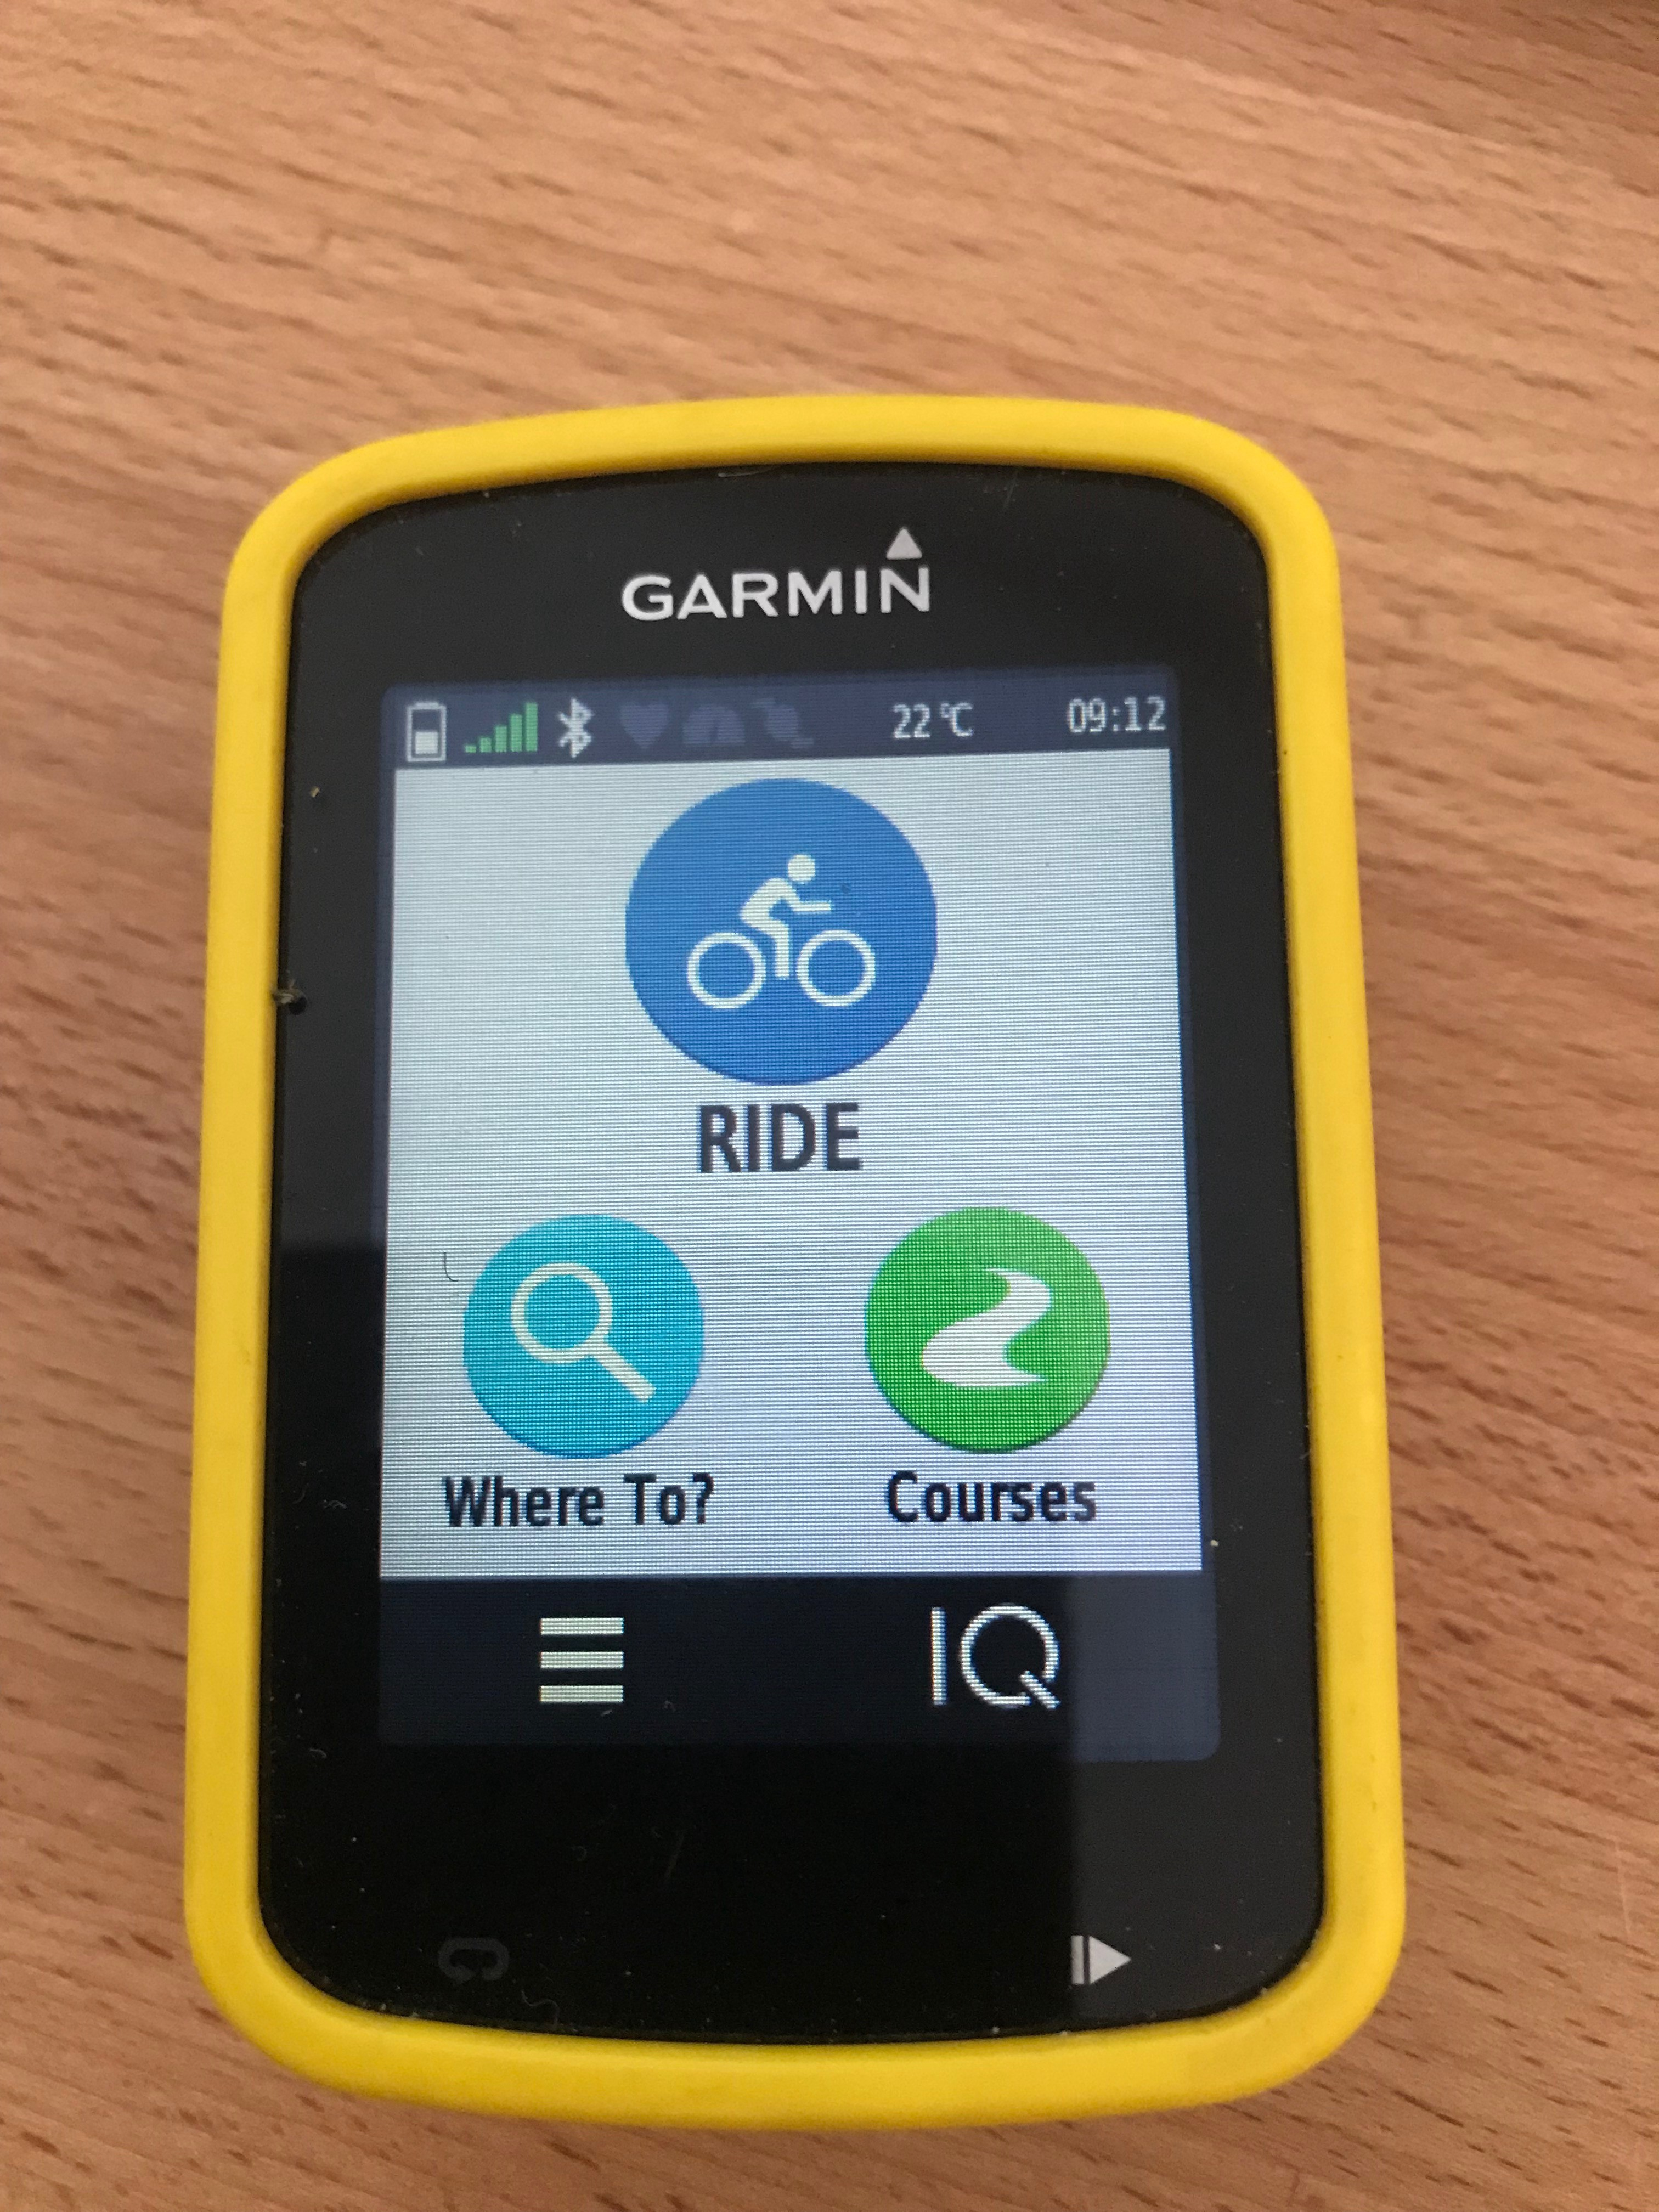 Uploading GPX track files onto the Garmin 820 from a Mac and